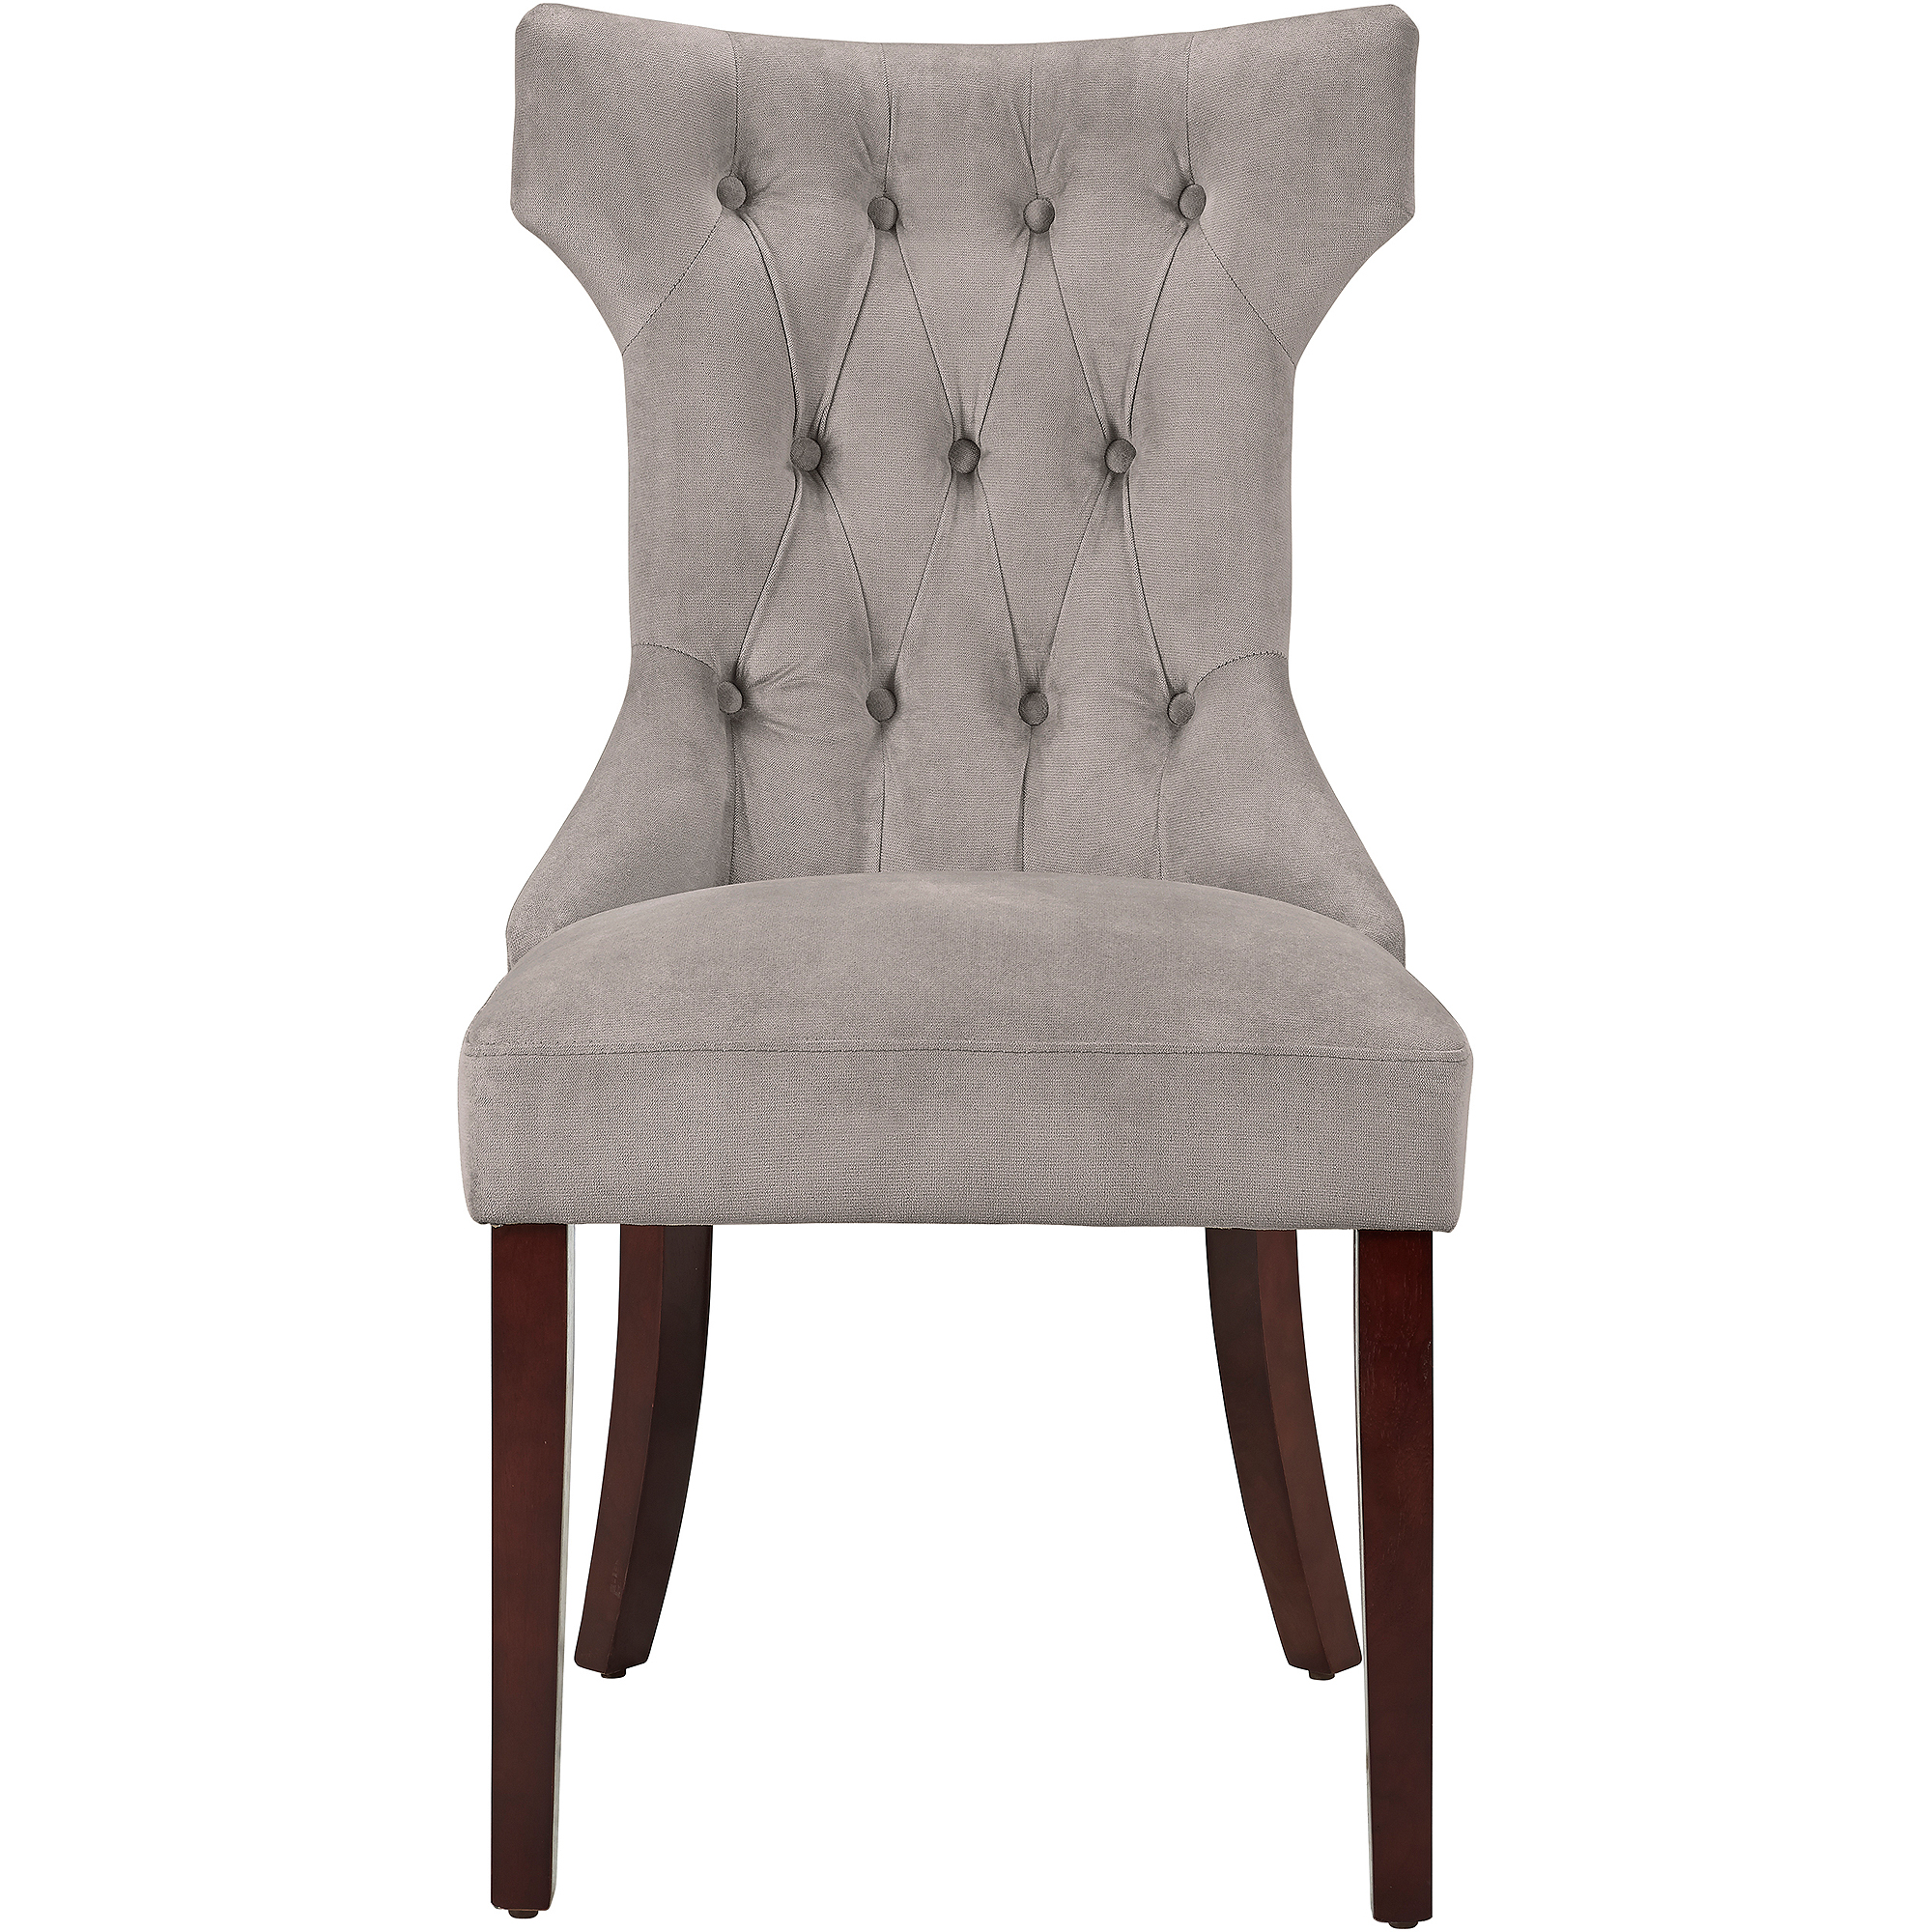 Amusing 90 Dining Chairs Upholstered Inspiration Sasha